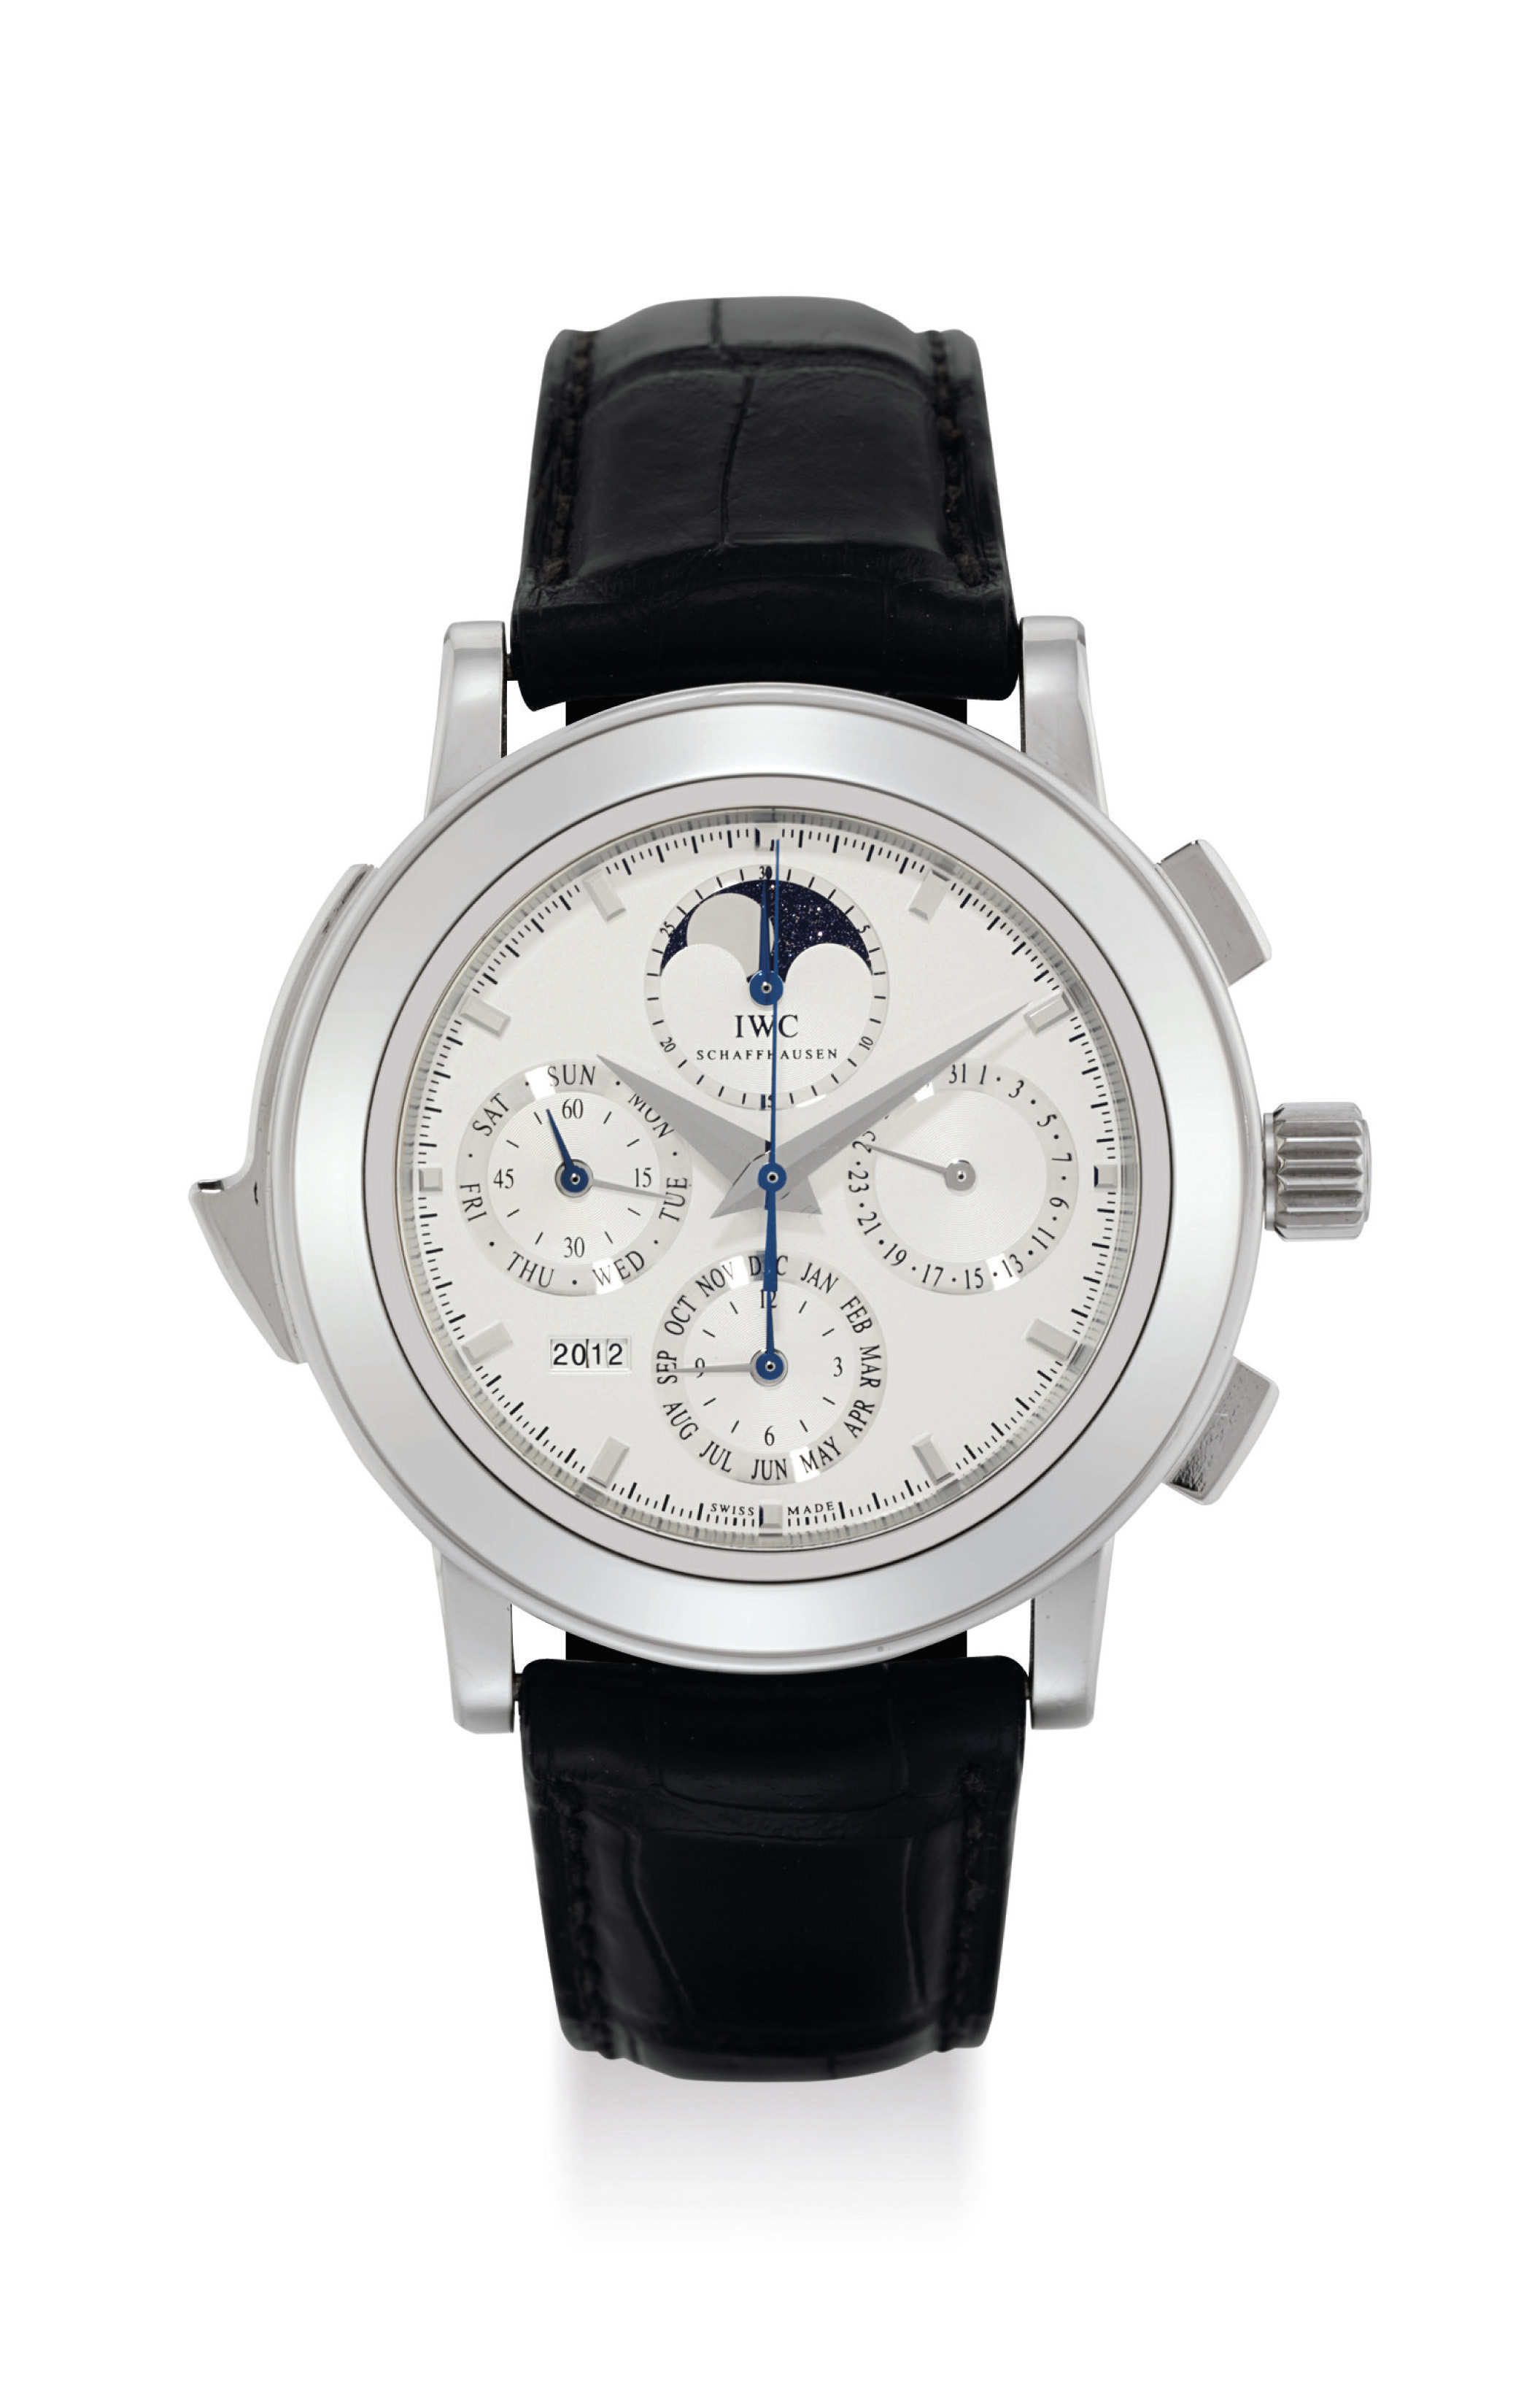 IWC. A FINE, LARGE, HEAVY AND